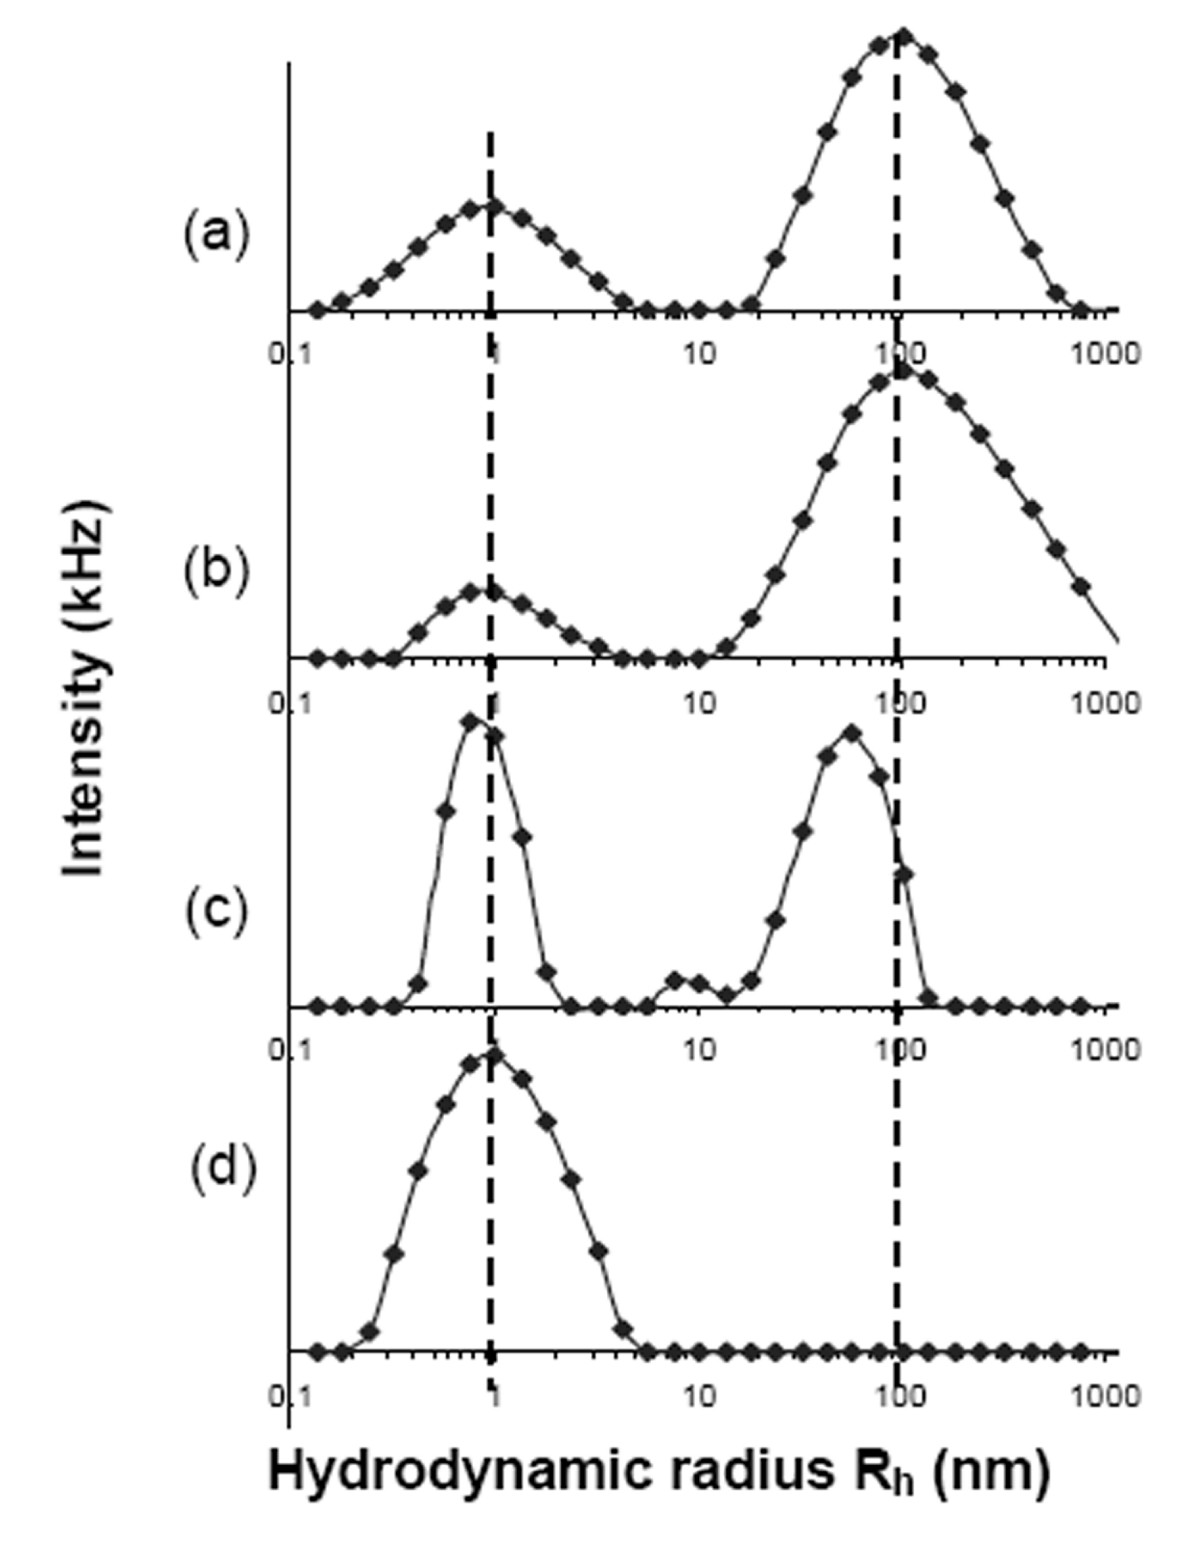 https://static-content.springer.com/image/art%3A10.1186%2F1754-1611-2-10/MediaObjects/13036_2008_Article_19_Fig6_HTML.jpg